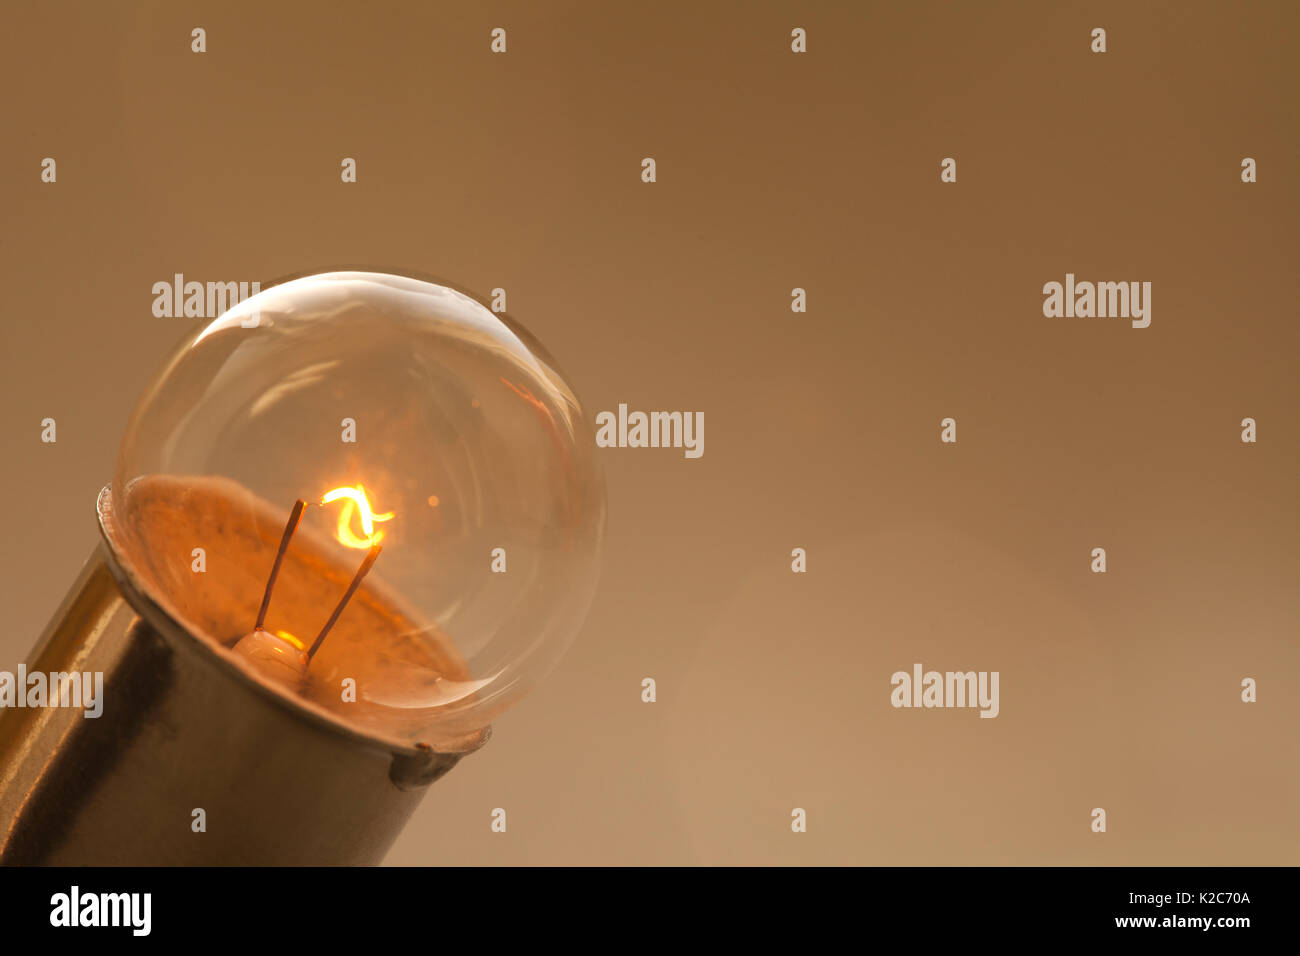 Glowing light bulb on gold brown background. Retro style lamp with ideal spherical surface and filament element. Stock Photo